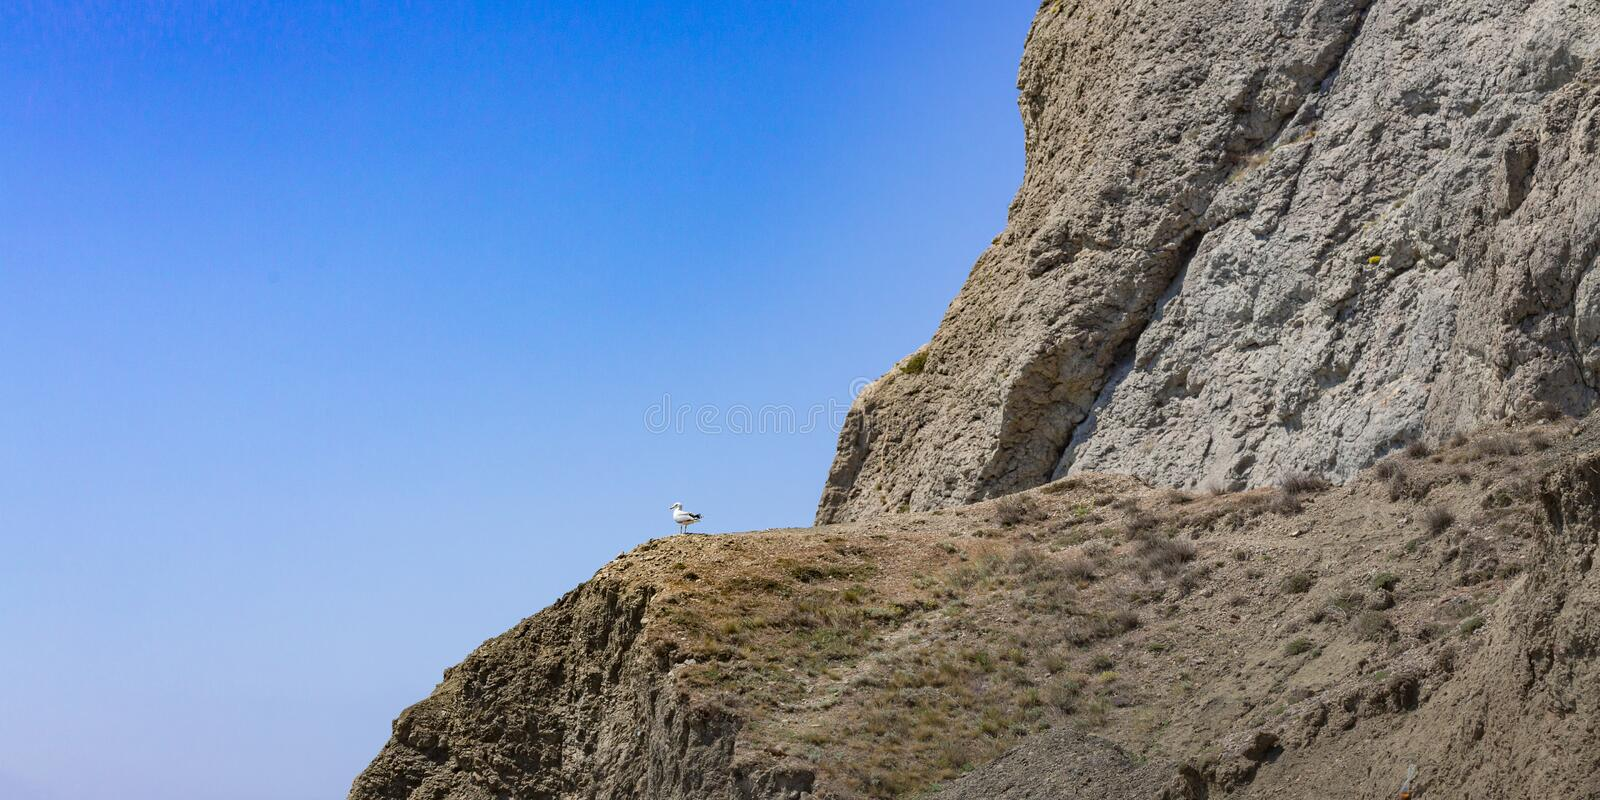 A sea-gull sitting at the edge of the cliff. A seagull sits on a cliff and looks towards the sky. Wildlife scenery of solitude, calmness and tranquility royalty free stock images